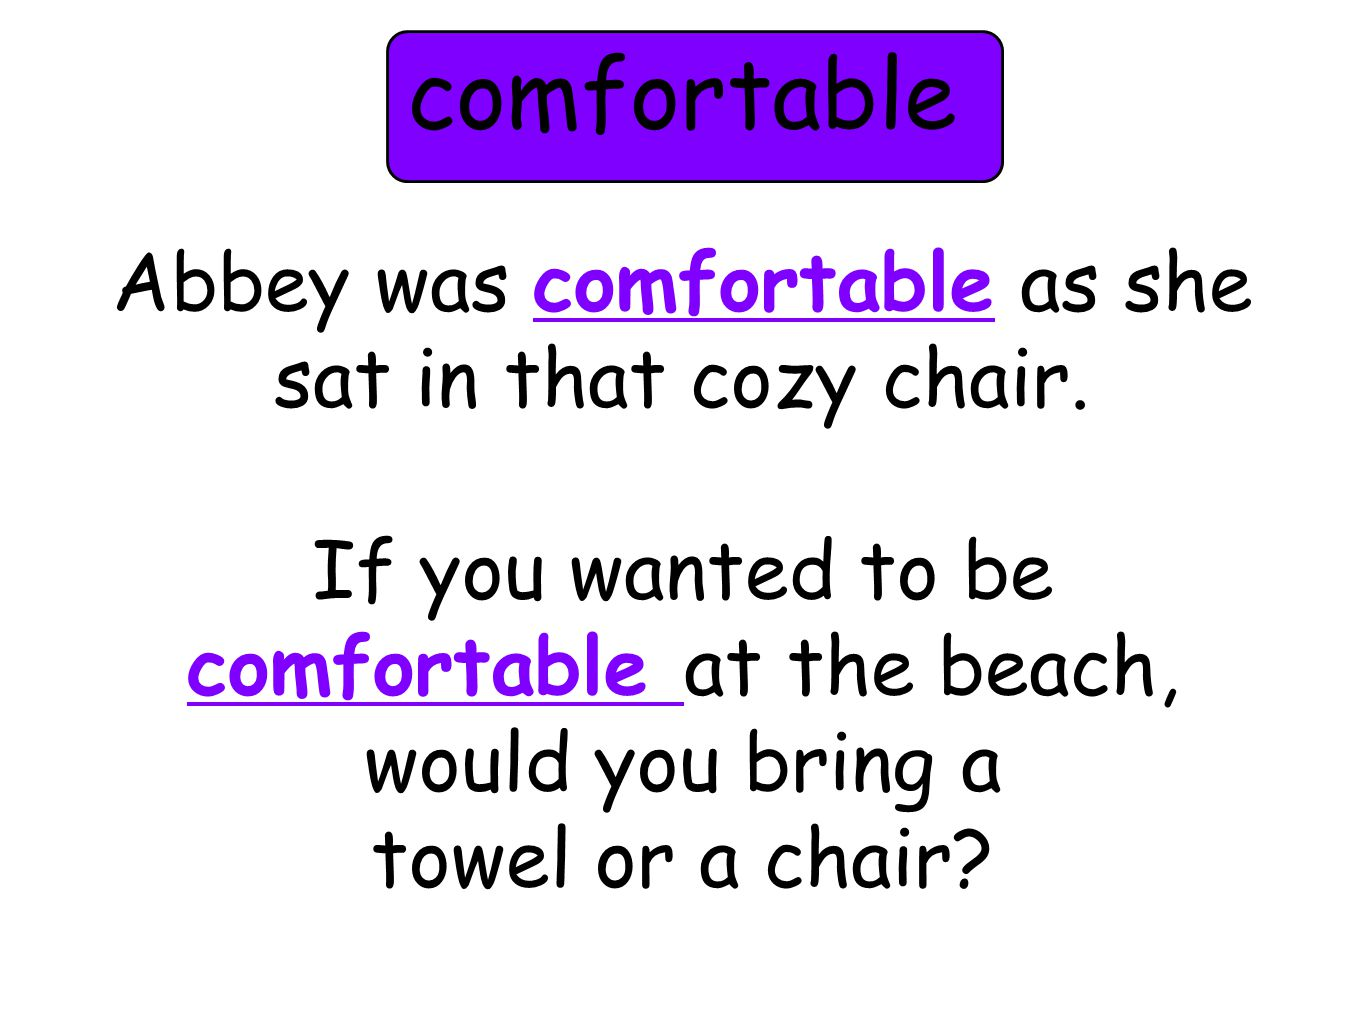 Abbey was comfortable as she sat in that cozy chair. If you wanted to be comfortable at the beach, would you bring a towel or a chair? comfortable